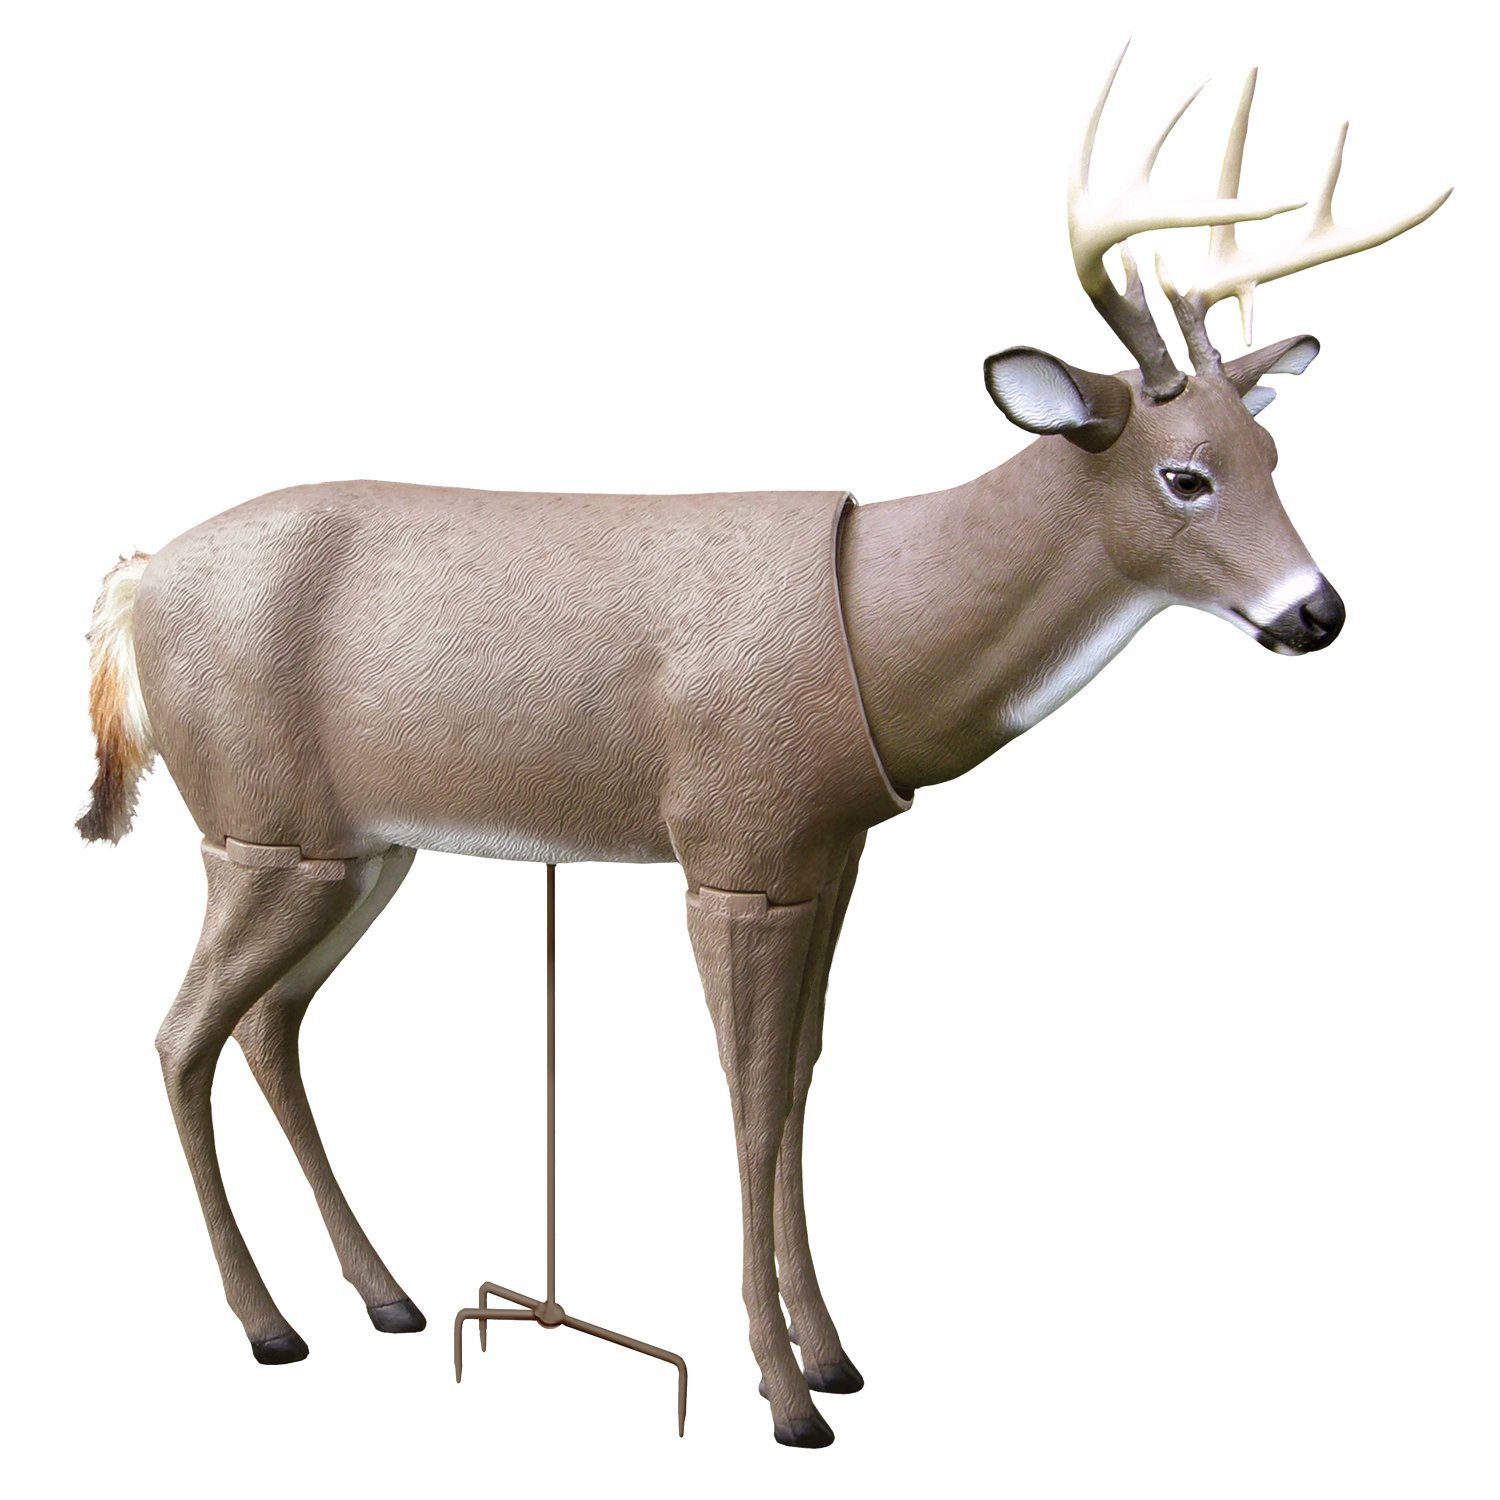 Primos Scarface Deer Decoy 62601